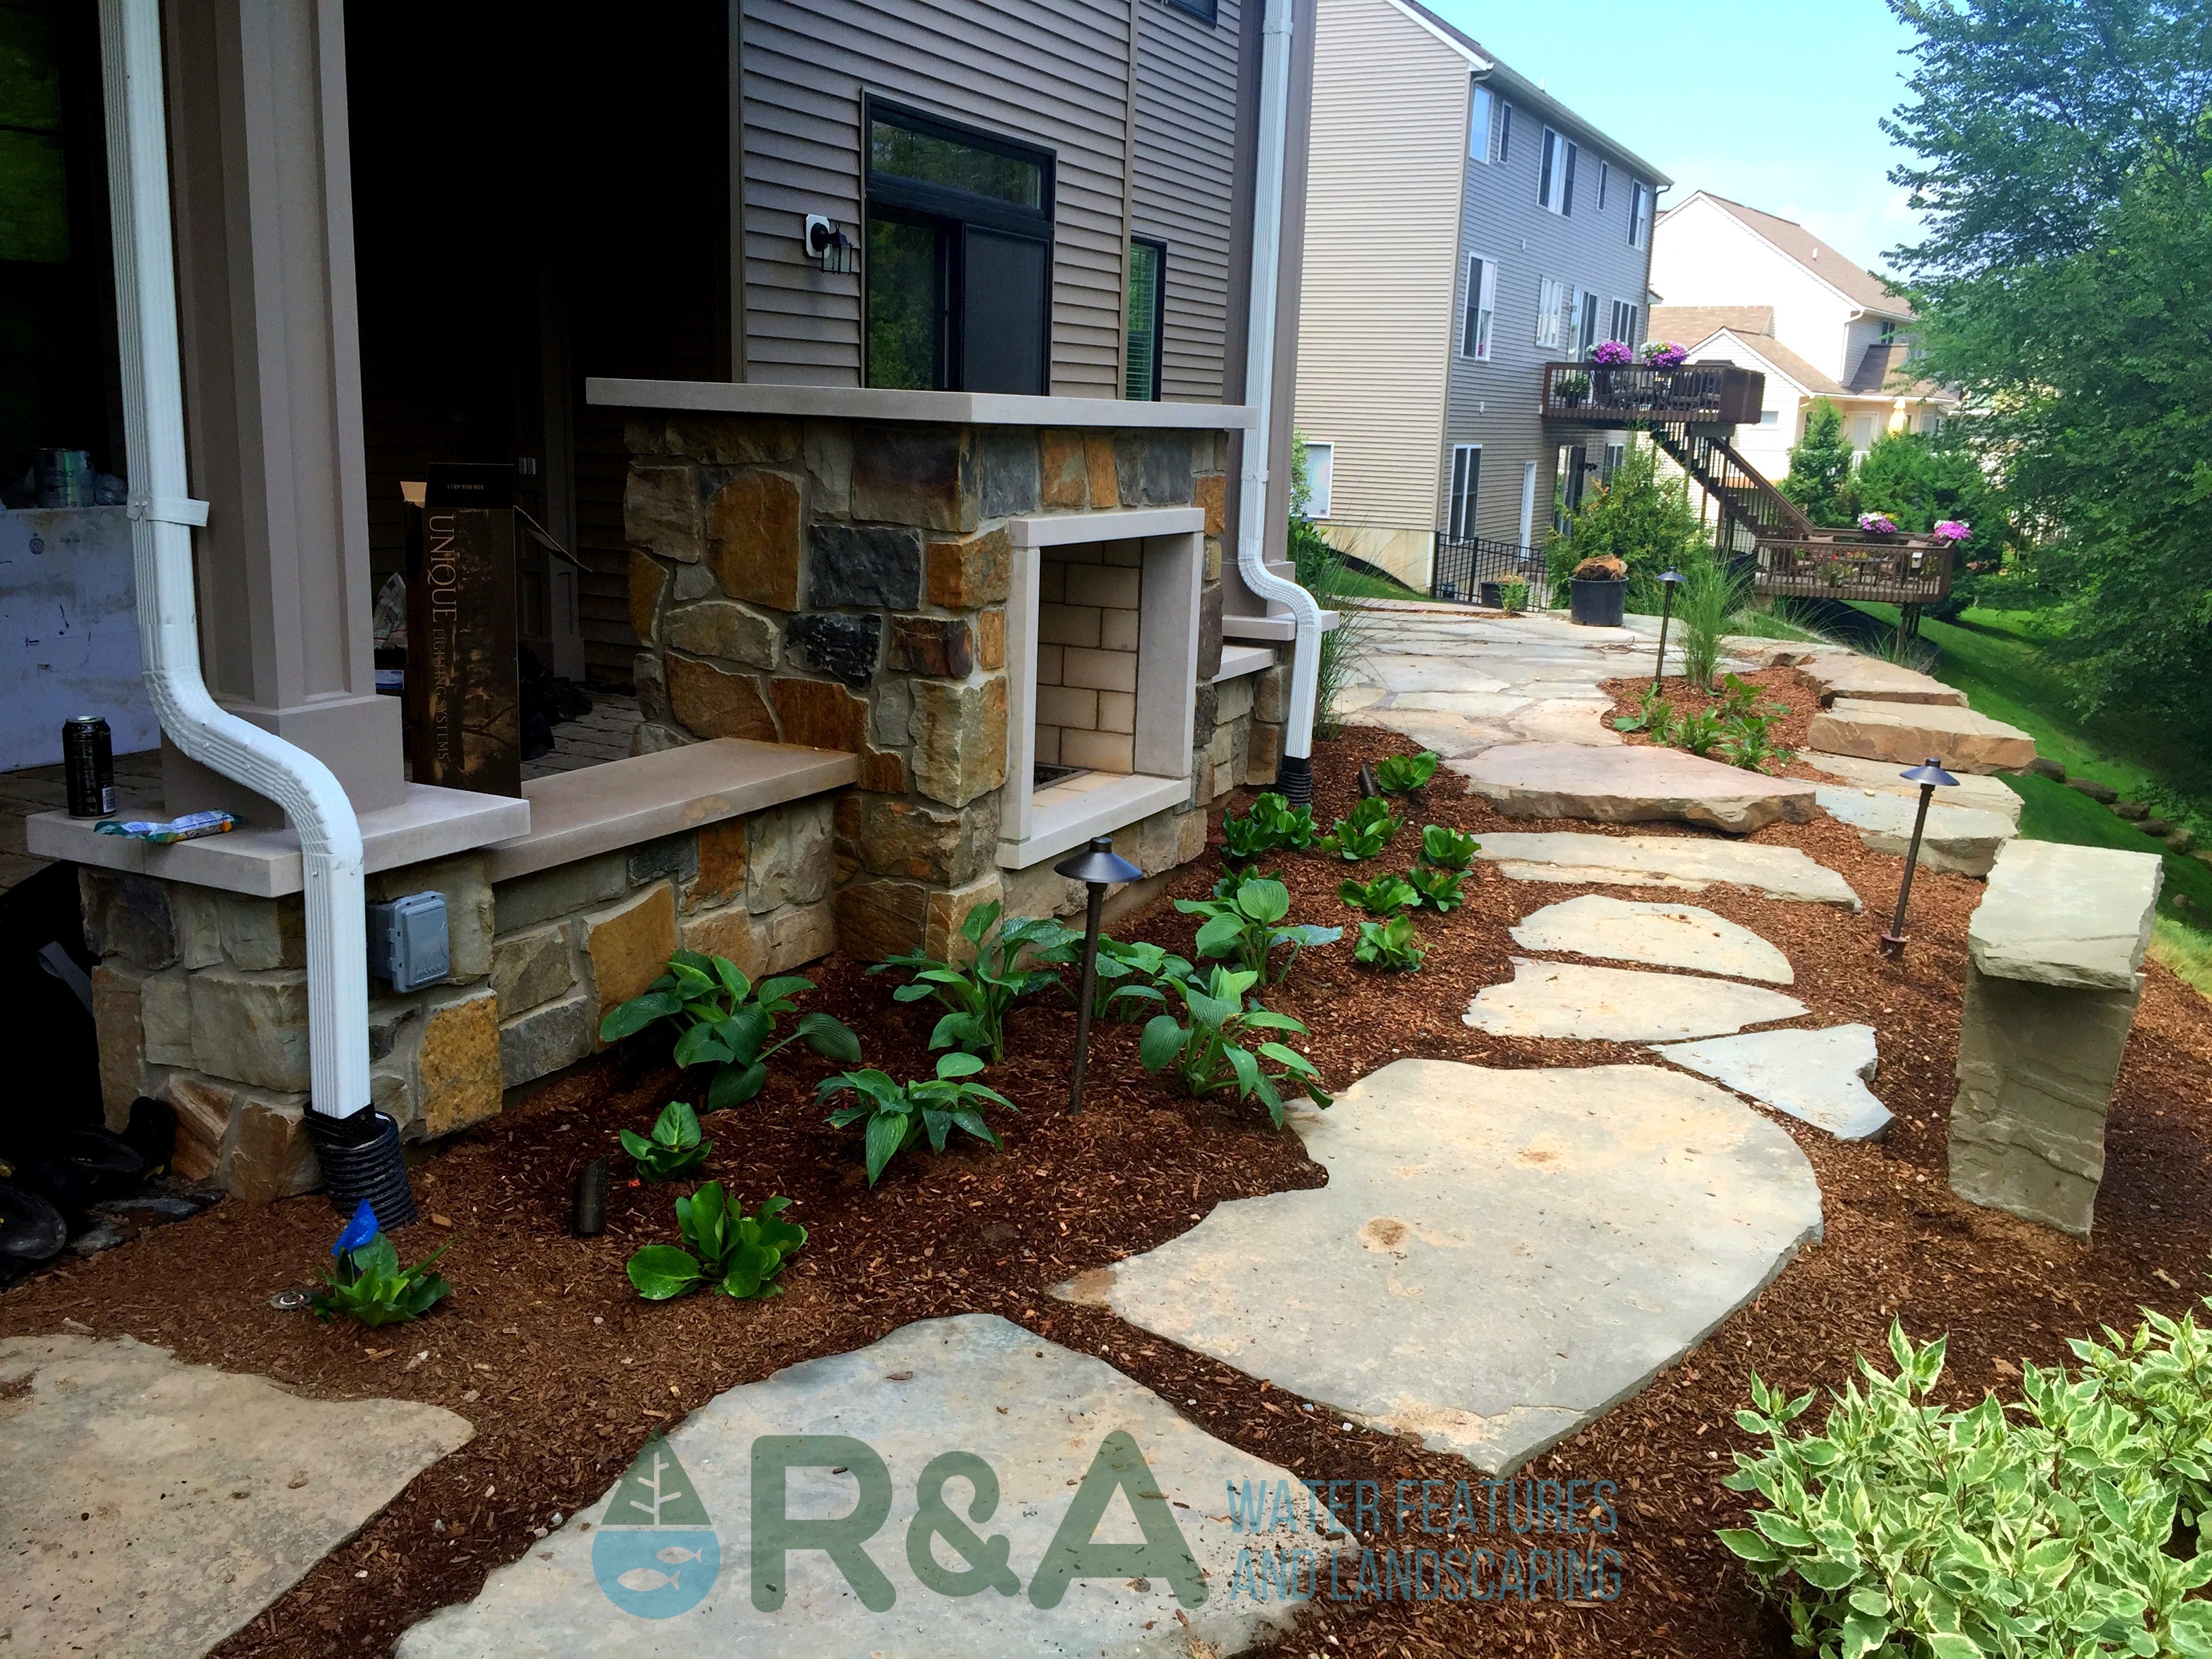 flagstone patio for backyard outdoor living space